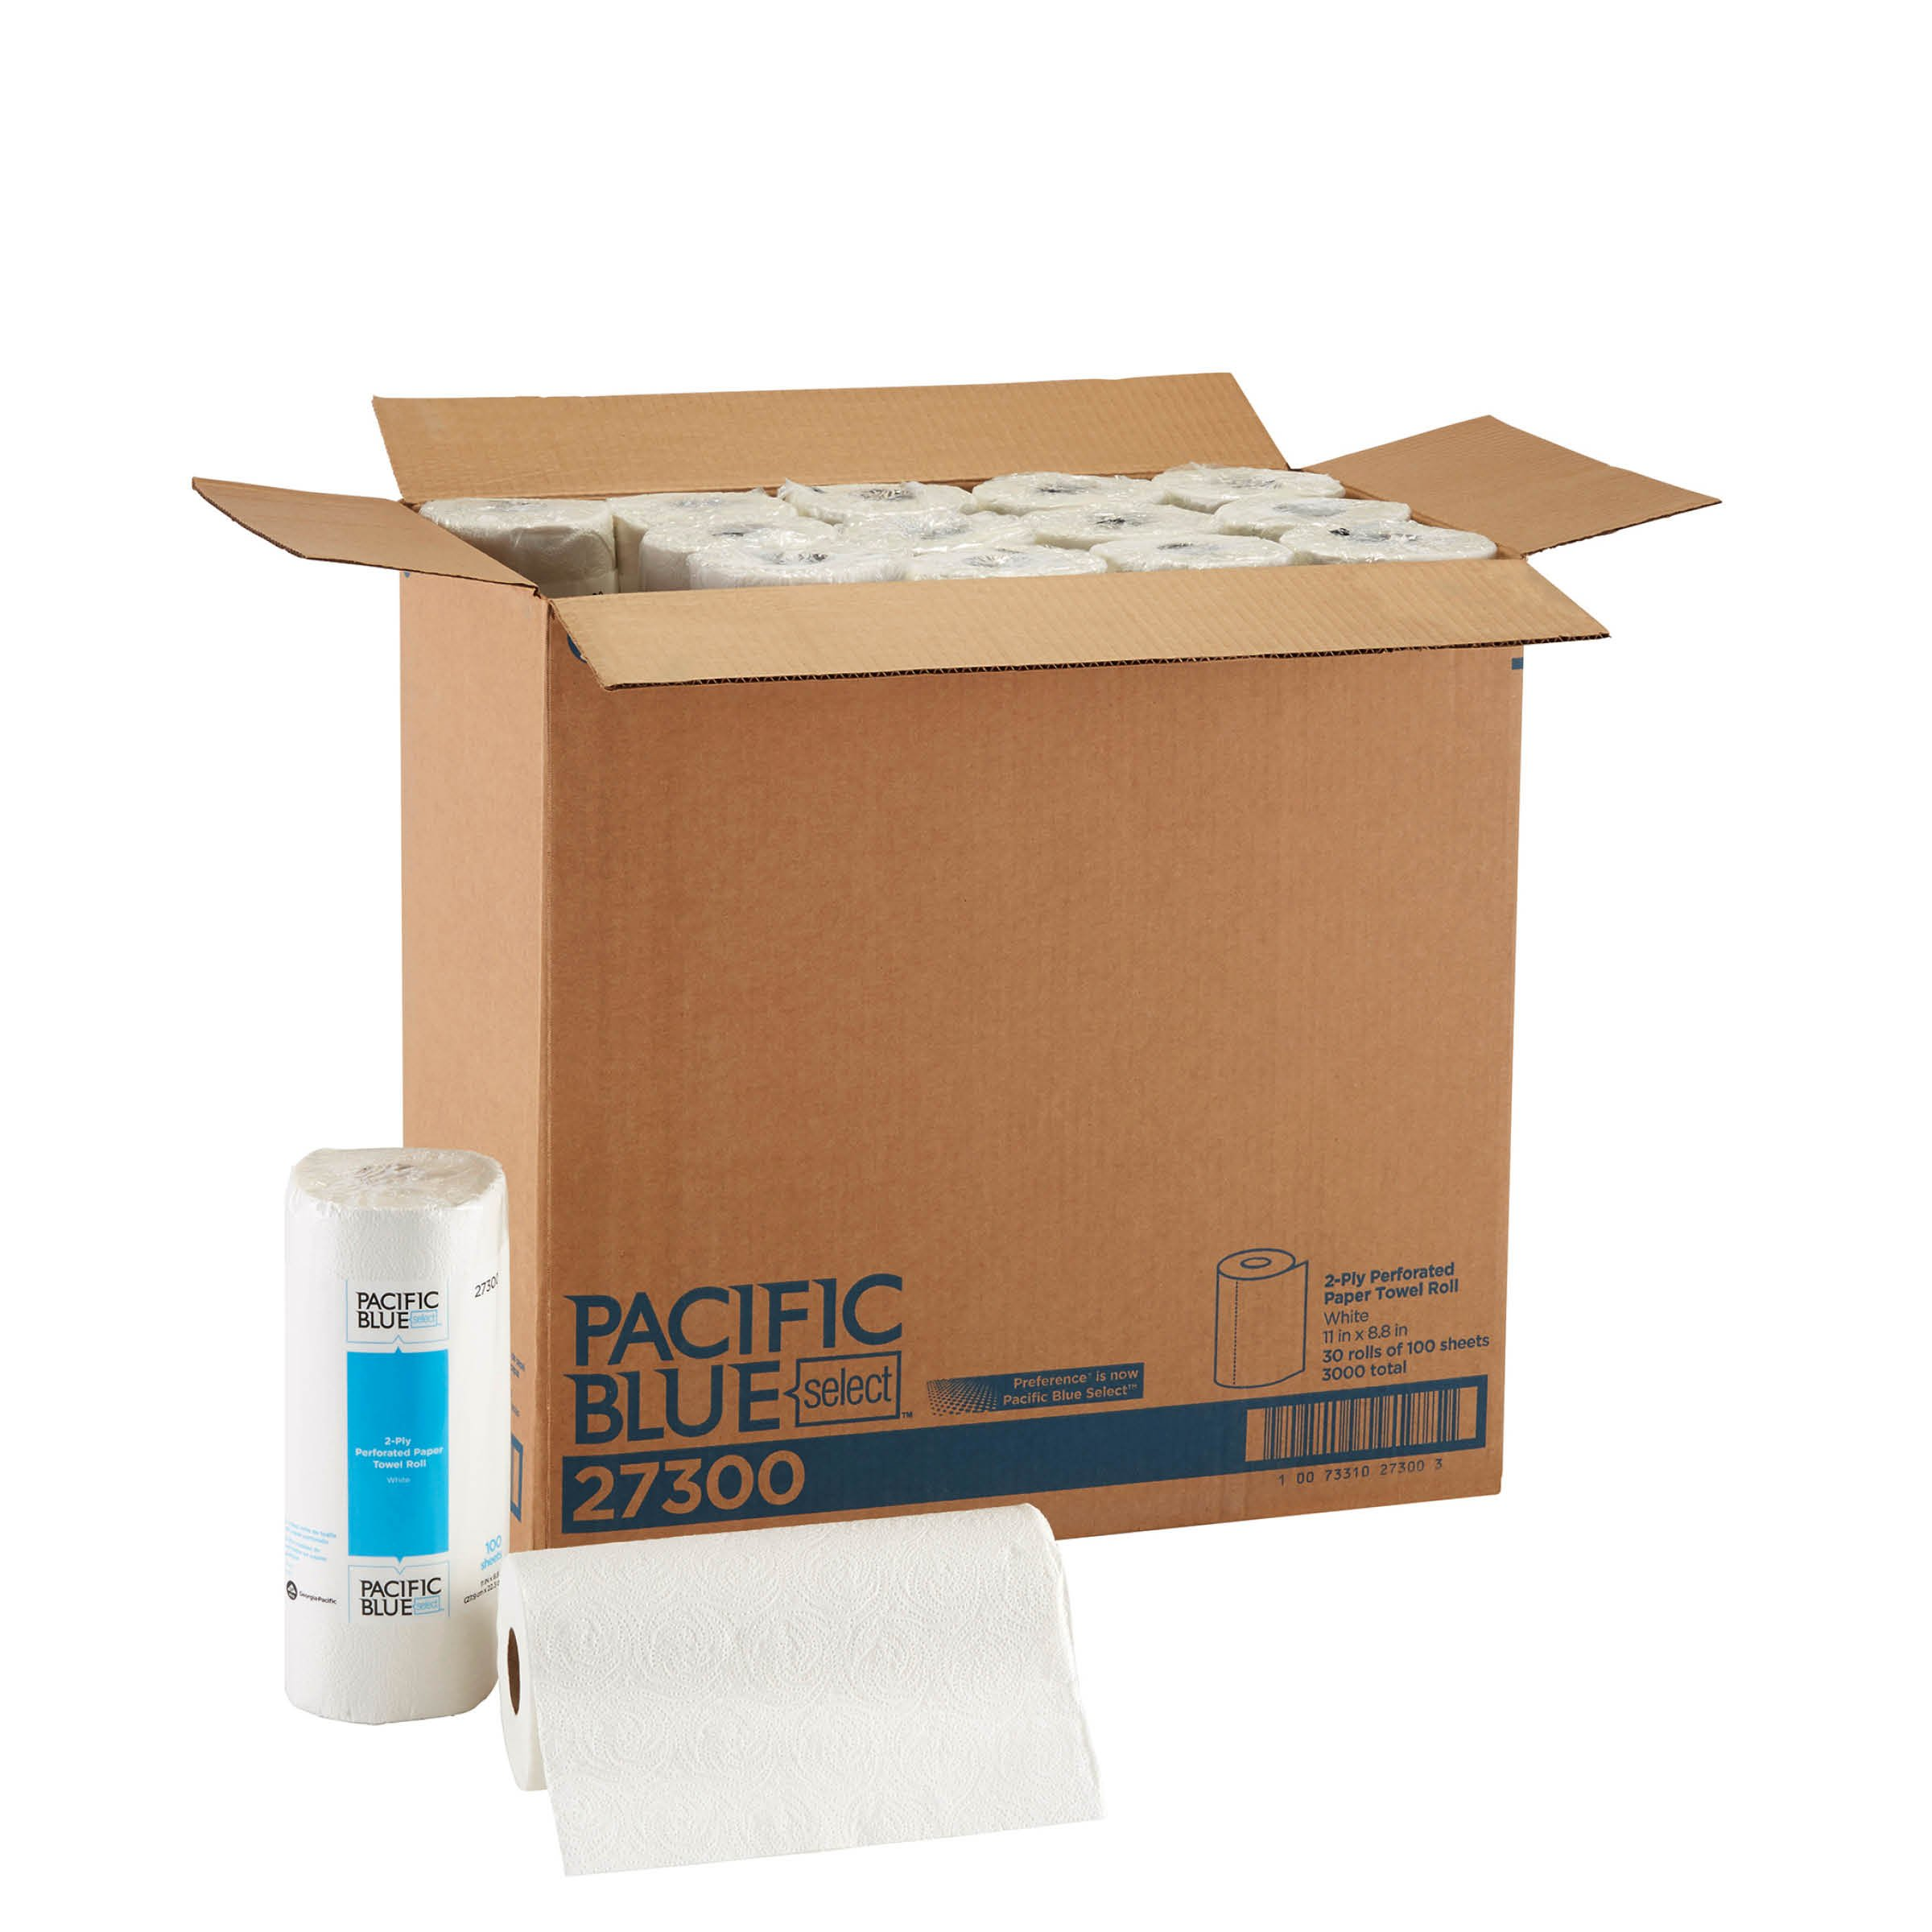 Pacific Blue Select (Previously Branded Preference) 27300 White 2-ply Perforated Paper Towel Roll by GP PRO, (WxL) 11.000'' x 8.800'' (Case of 30 Rolls, 100 Towels per Roll)